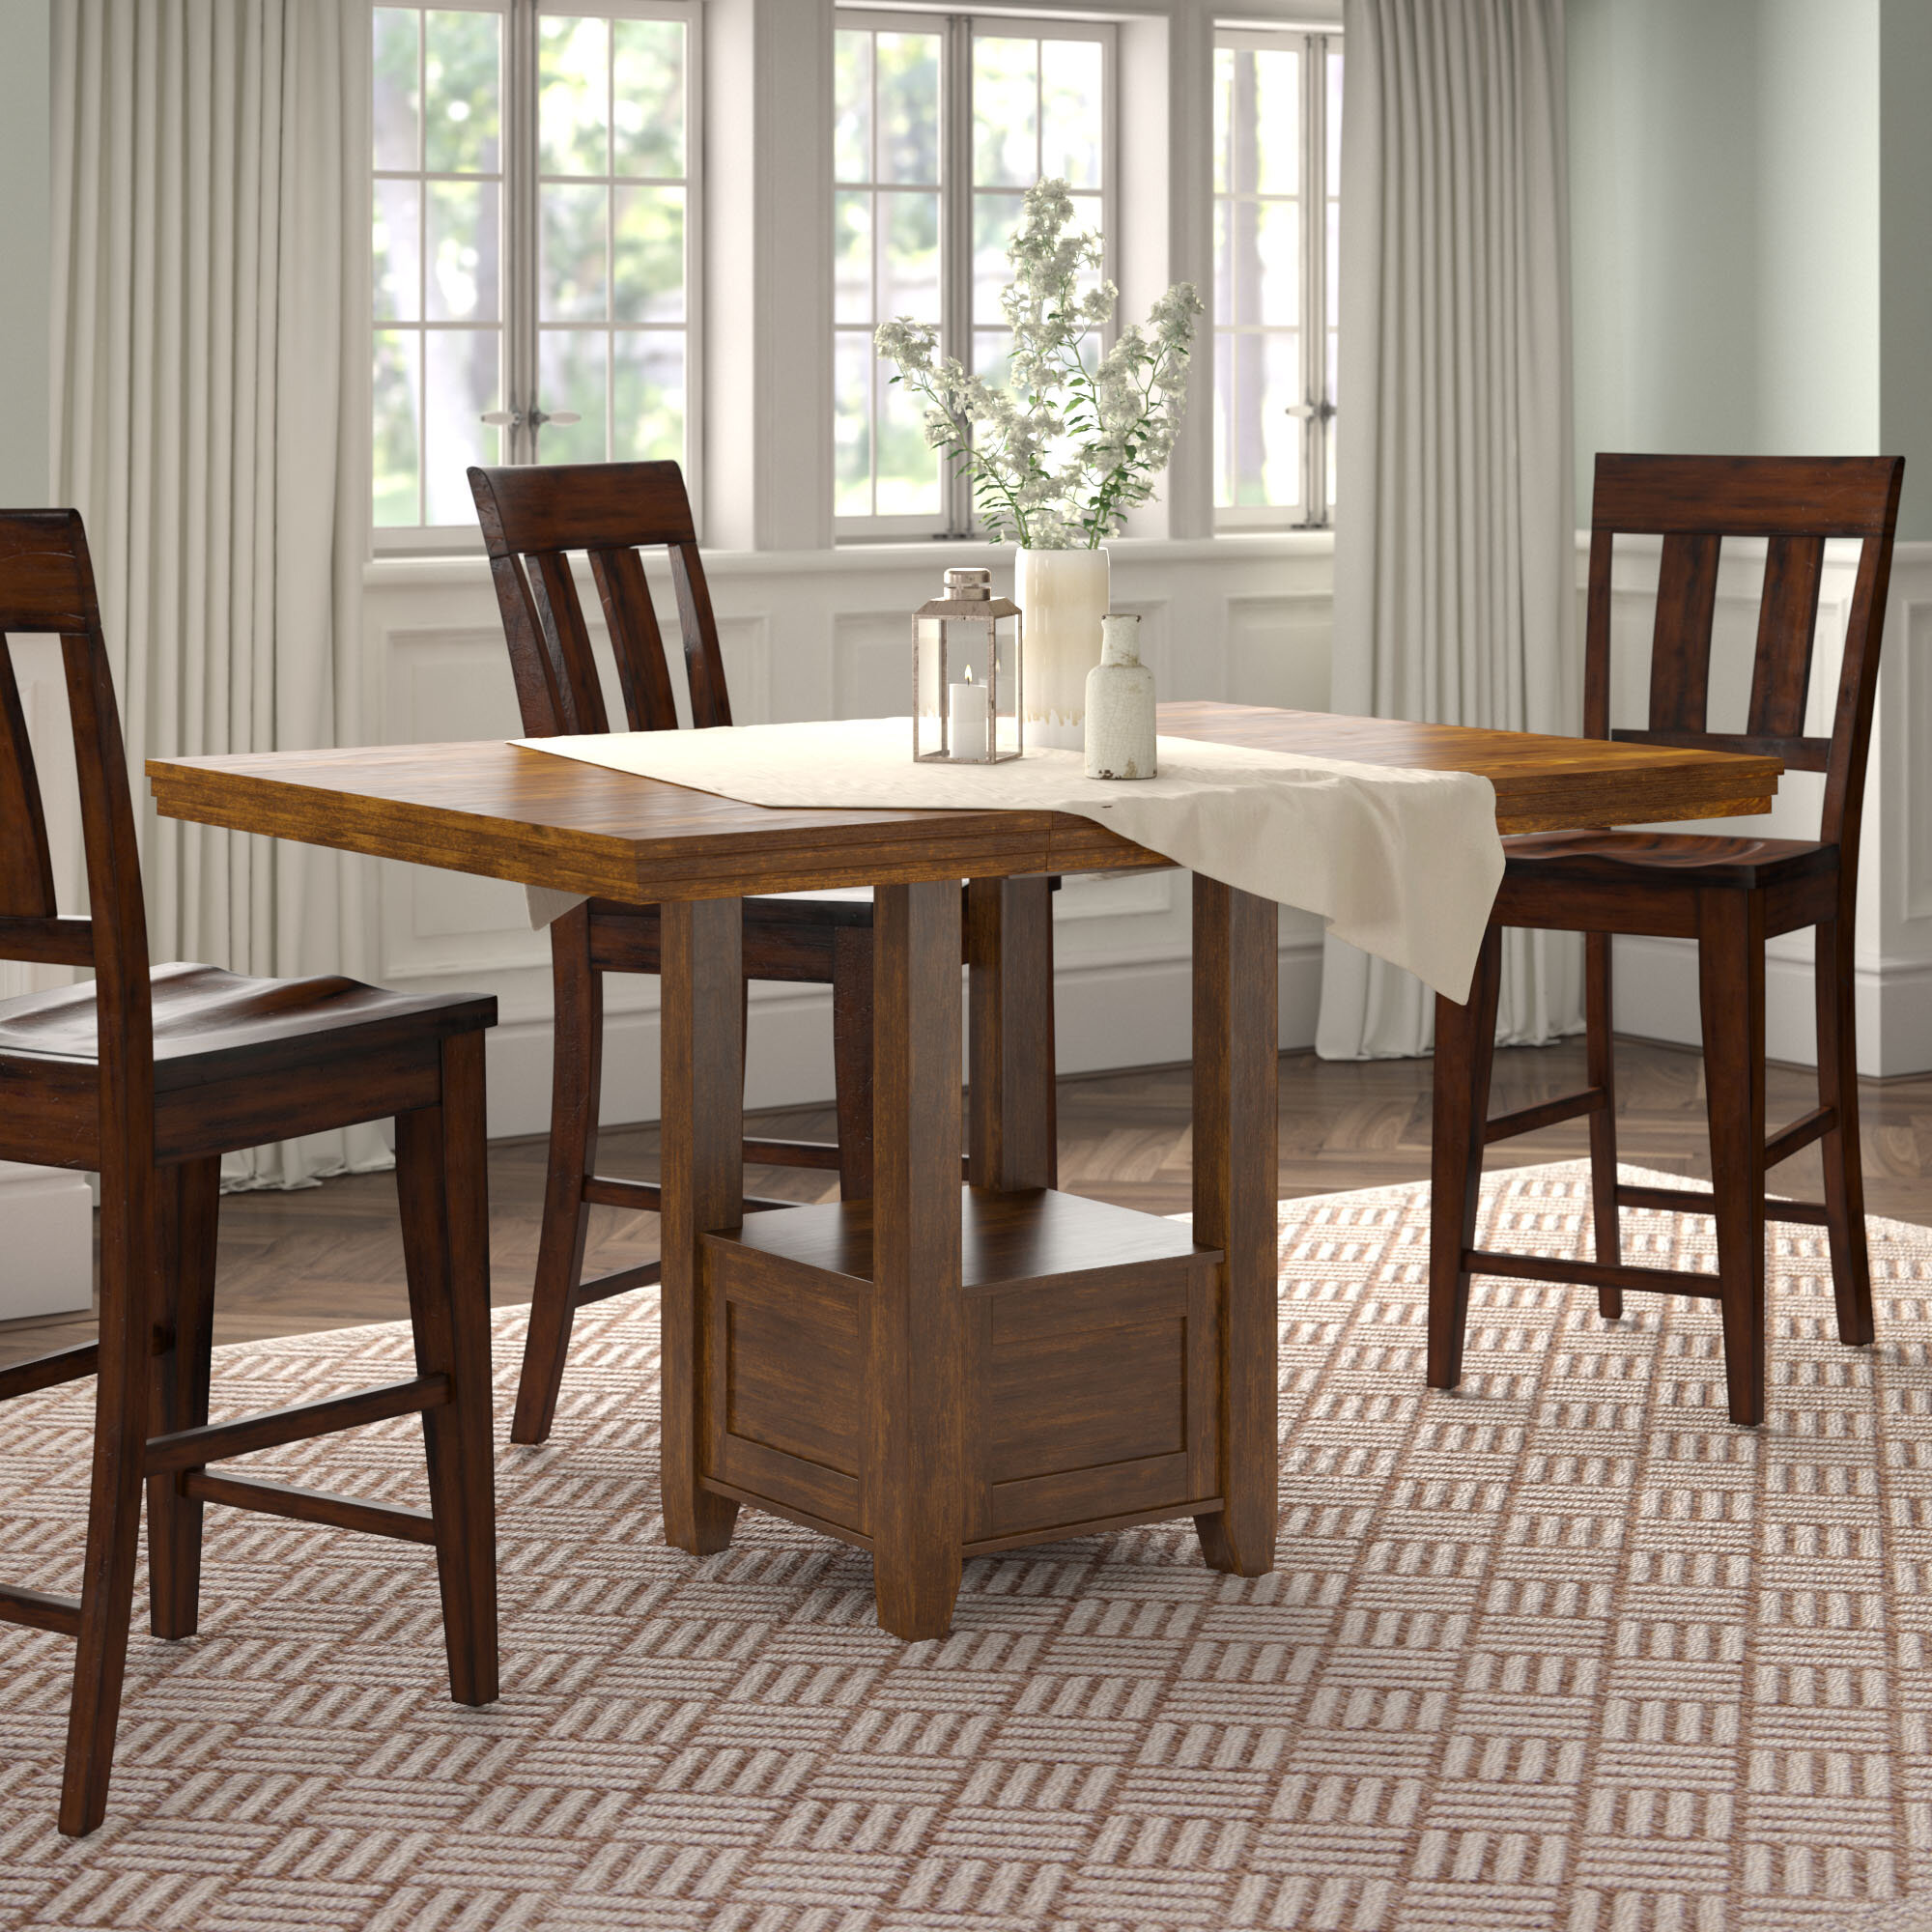 Picture of: Rustic Farmhouse Small Kitchen Dining Tables You Ll Love In 2020 Wayfair